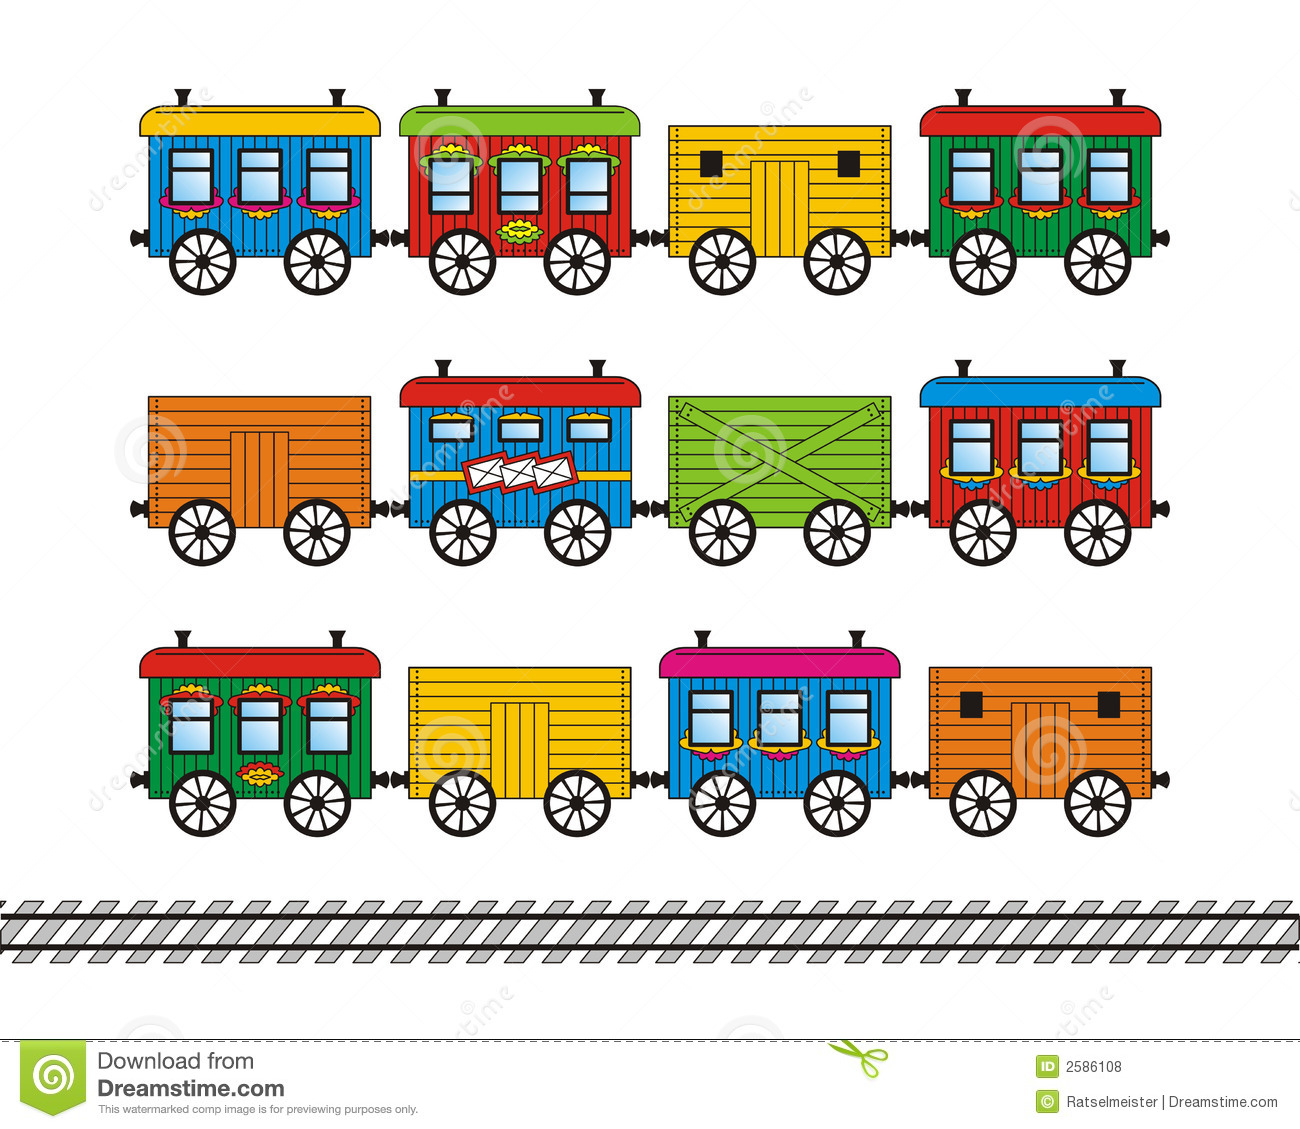 Train car clipart vector.